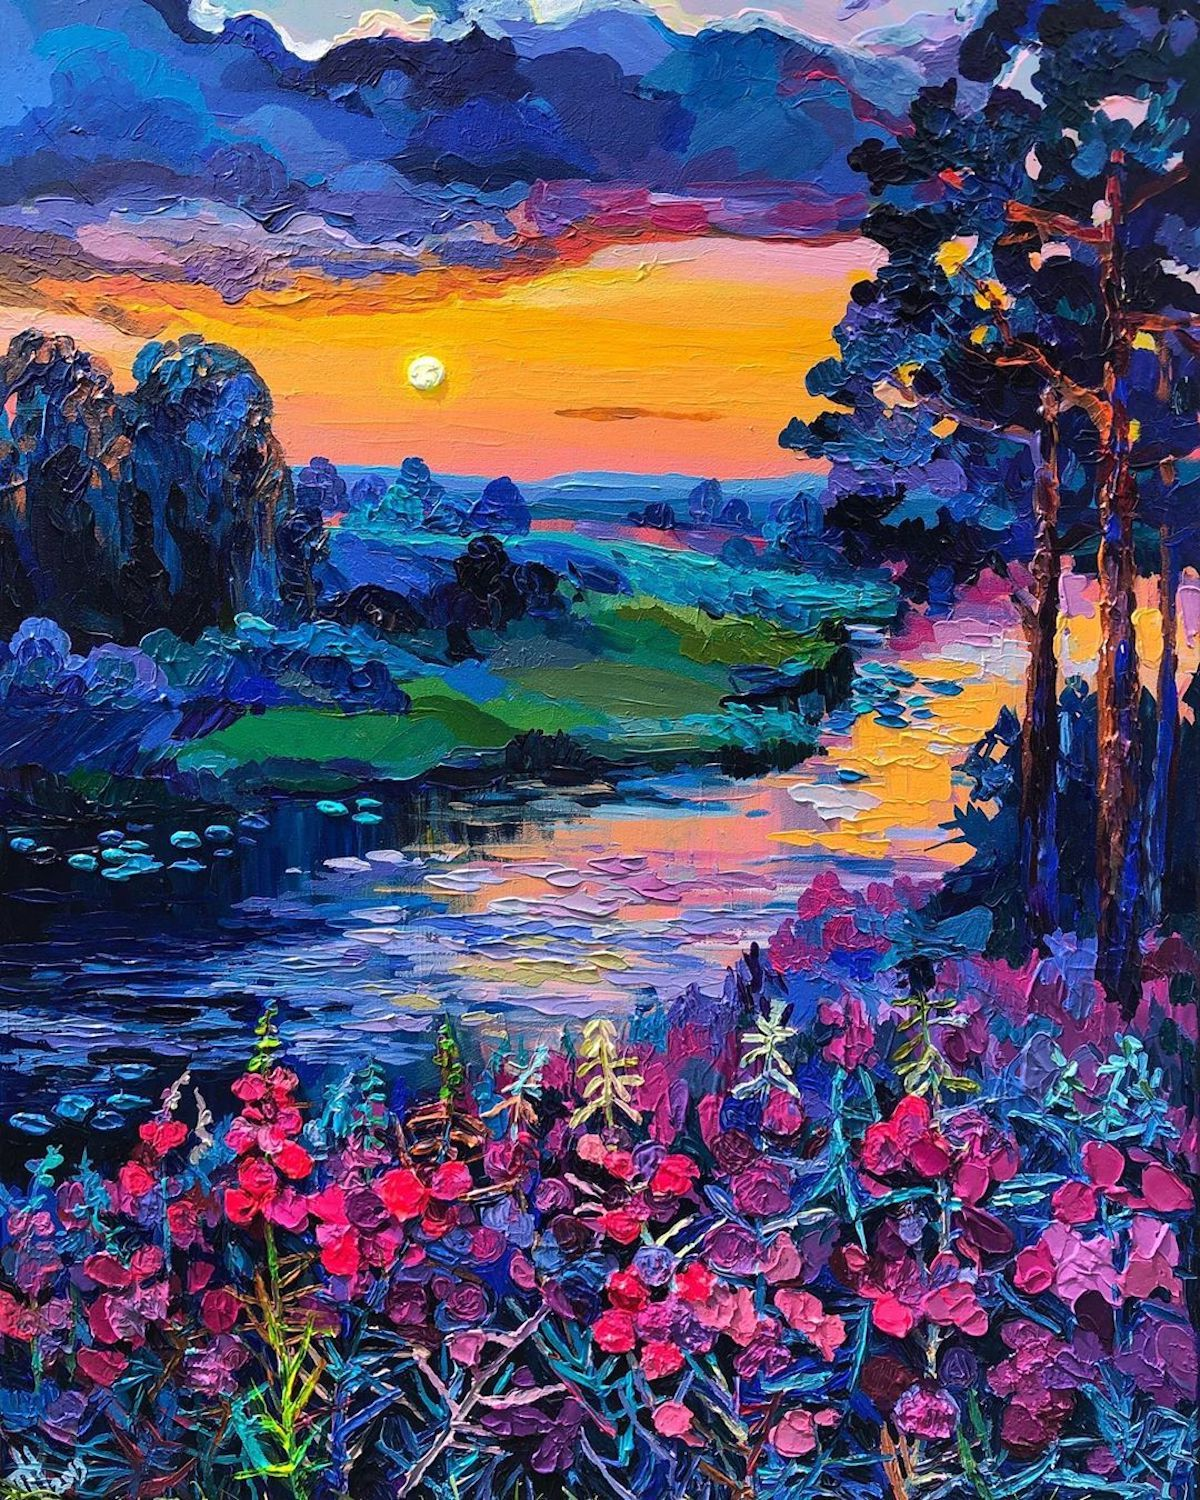 Brilliant Textured Paintings Capture European Countrysides In Kaleidoscopic Colors In 2020 Landscape Paintings Colorful Art Art Painting